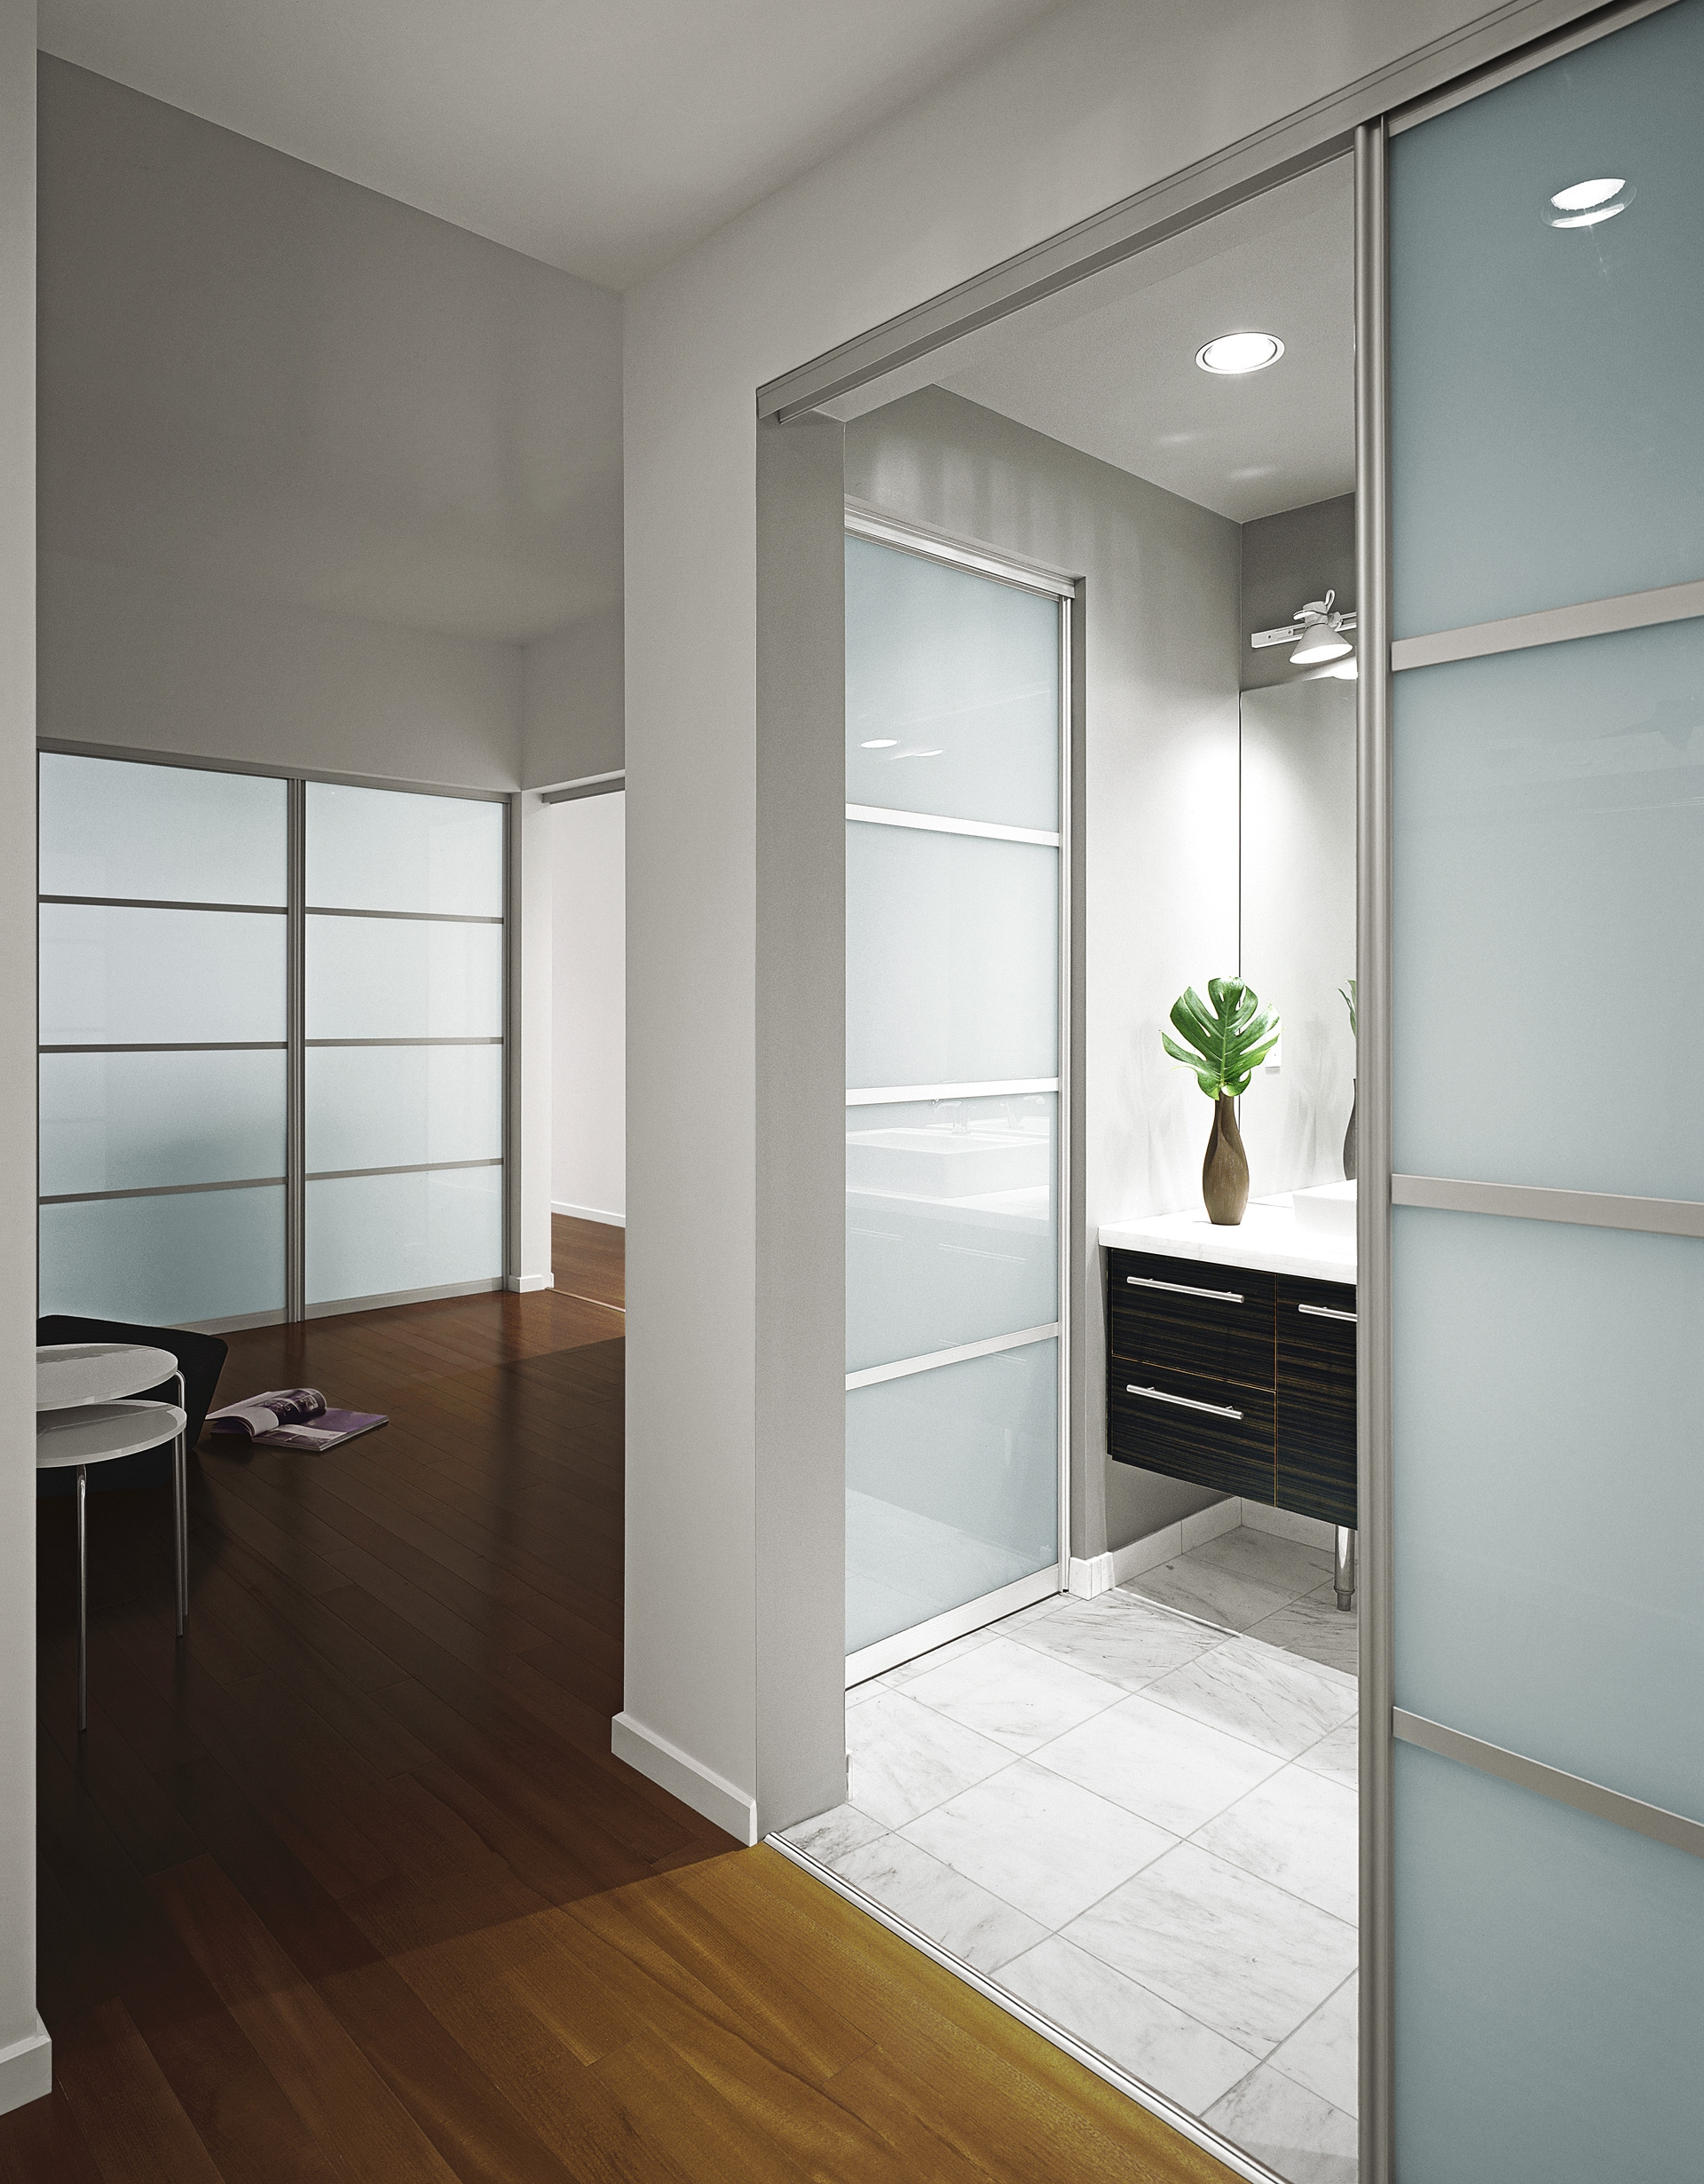 Bathroom Sliding Door Revittheater doors revit shell construction